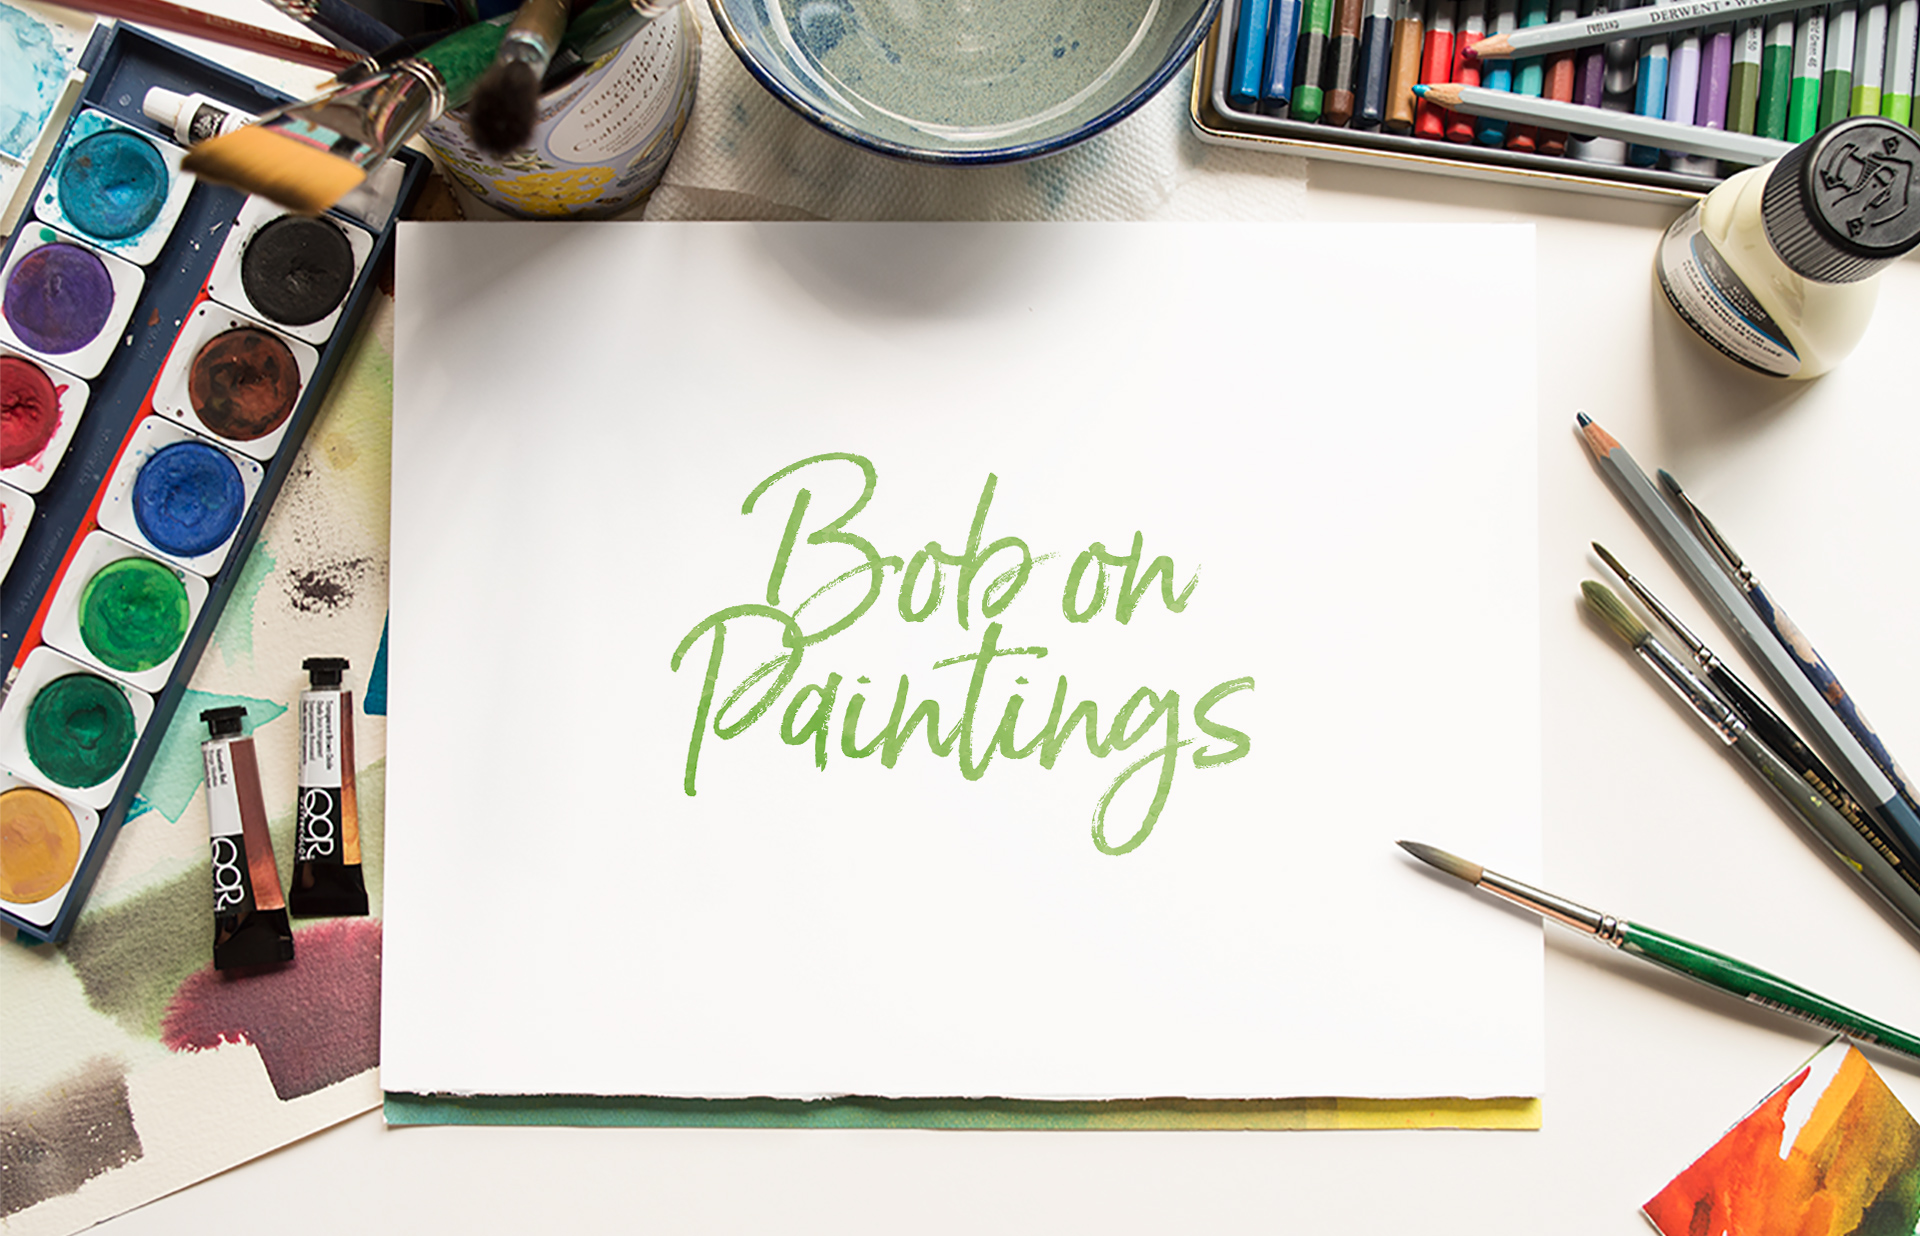 Logo design for watercolour artist, Bob on Paintings (Bob Sutcliffe)